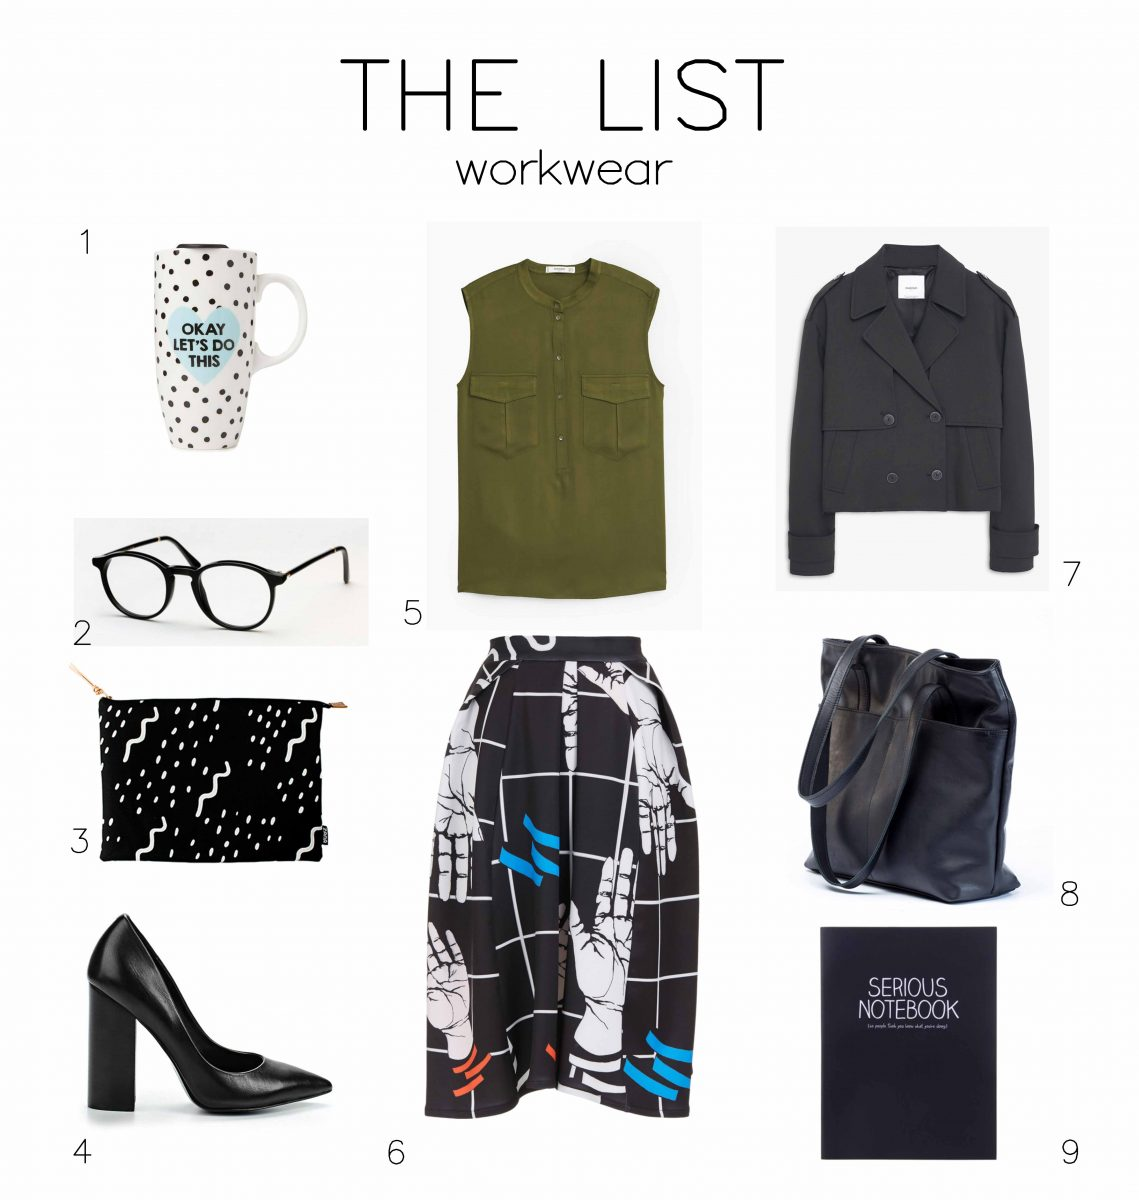 THE LIST: WORKWEAR